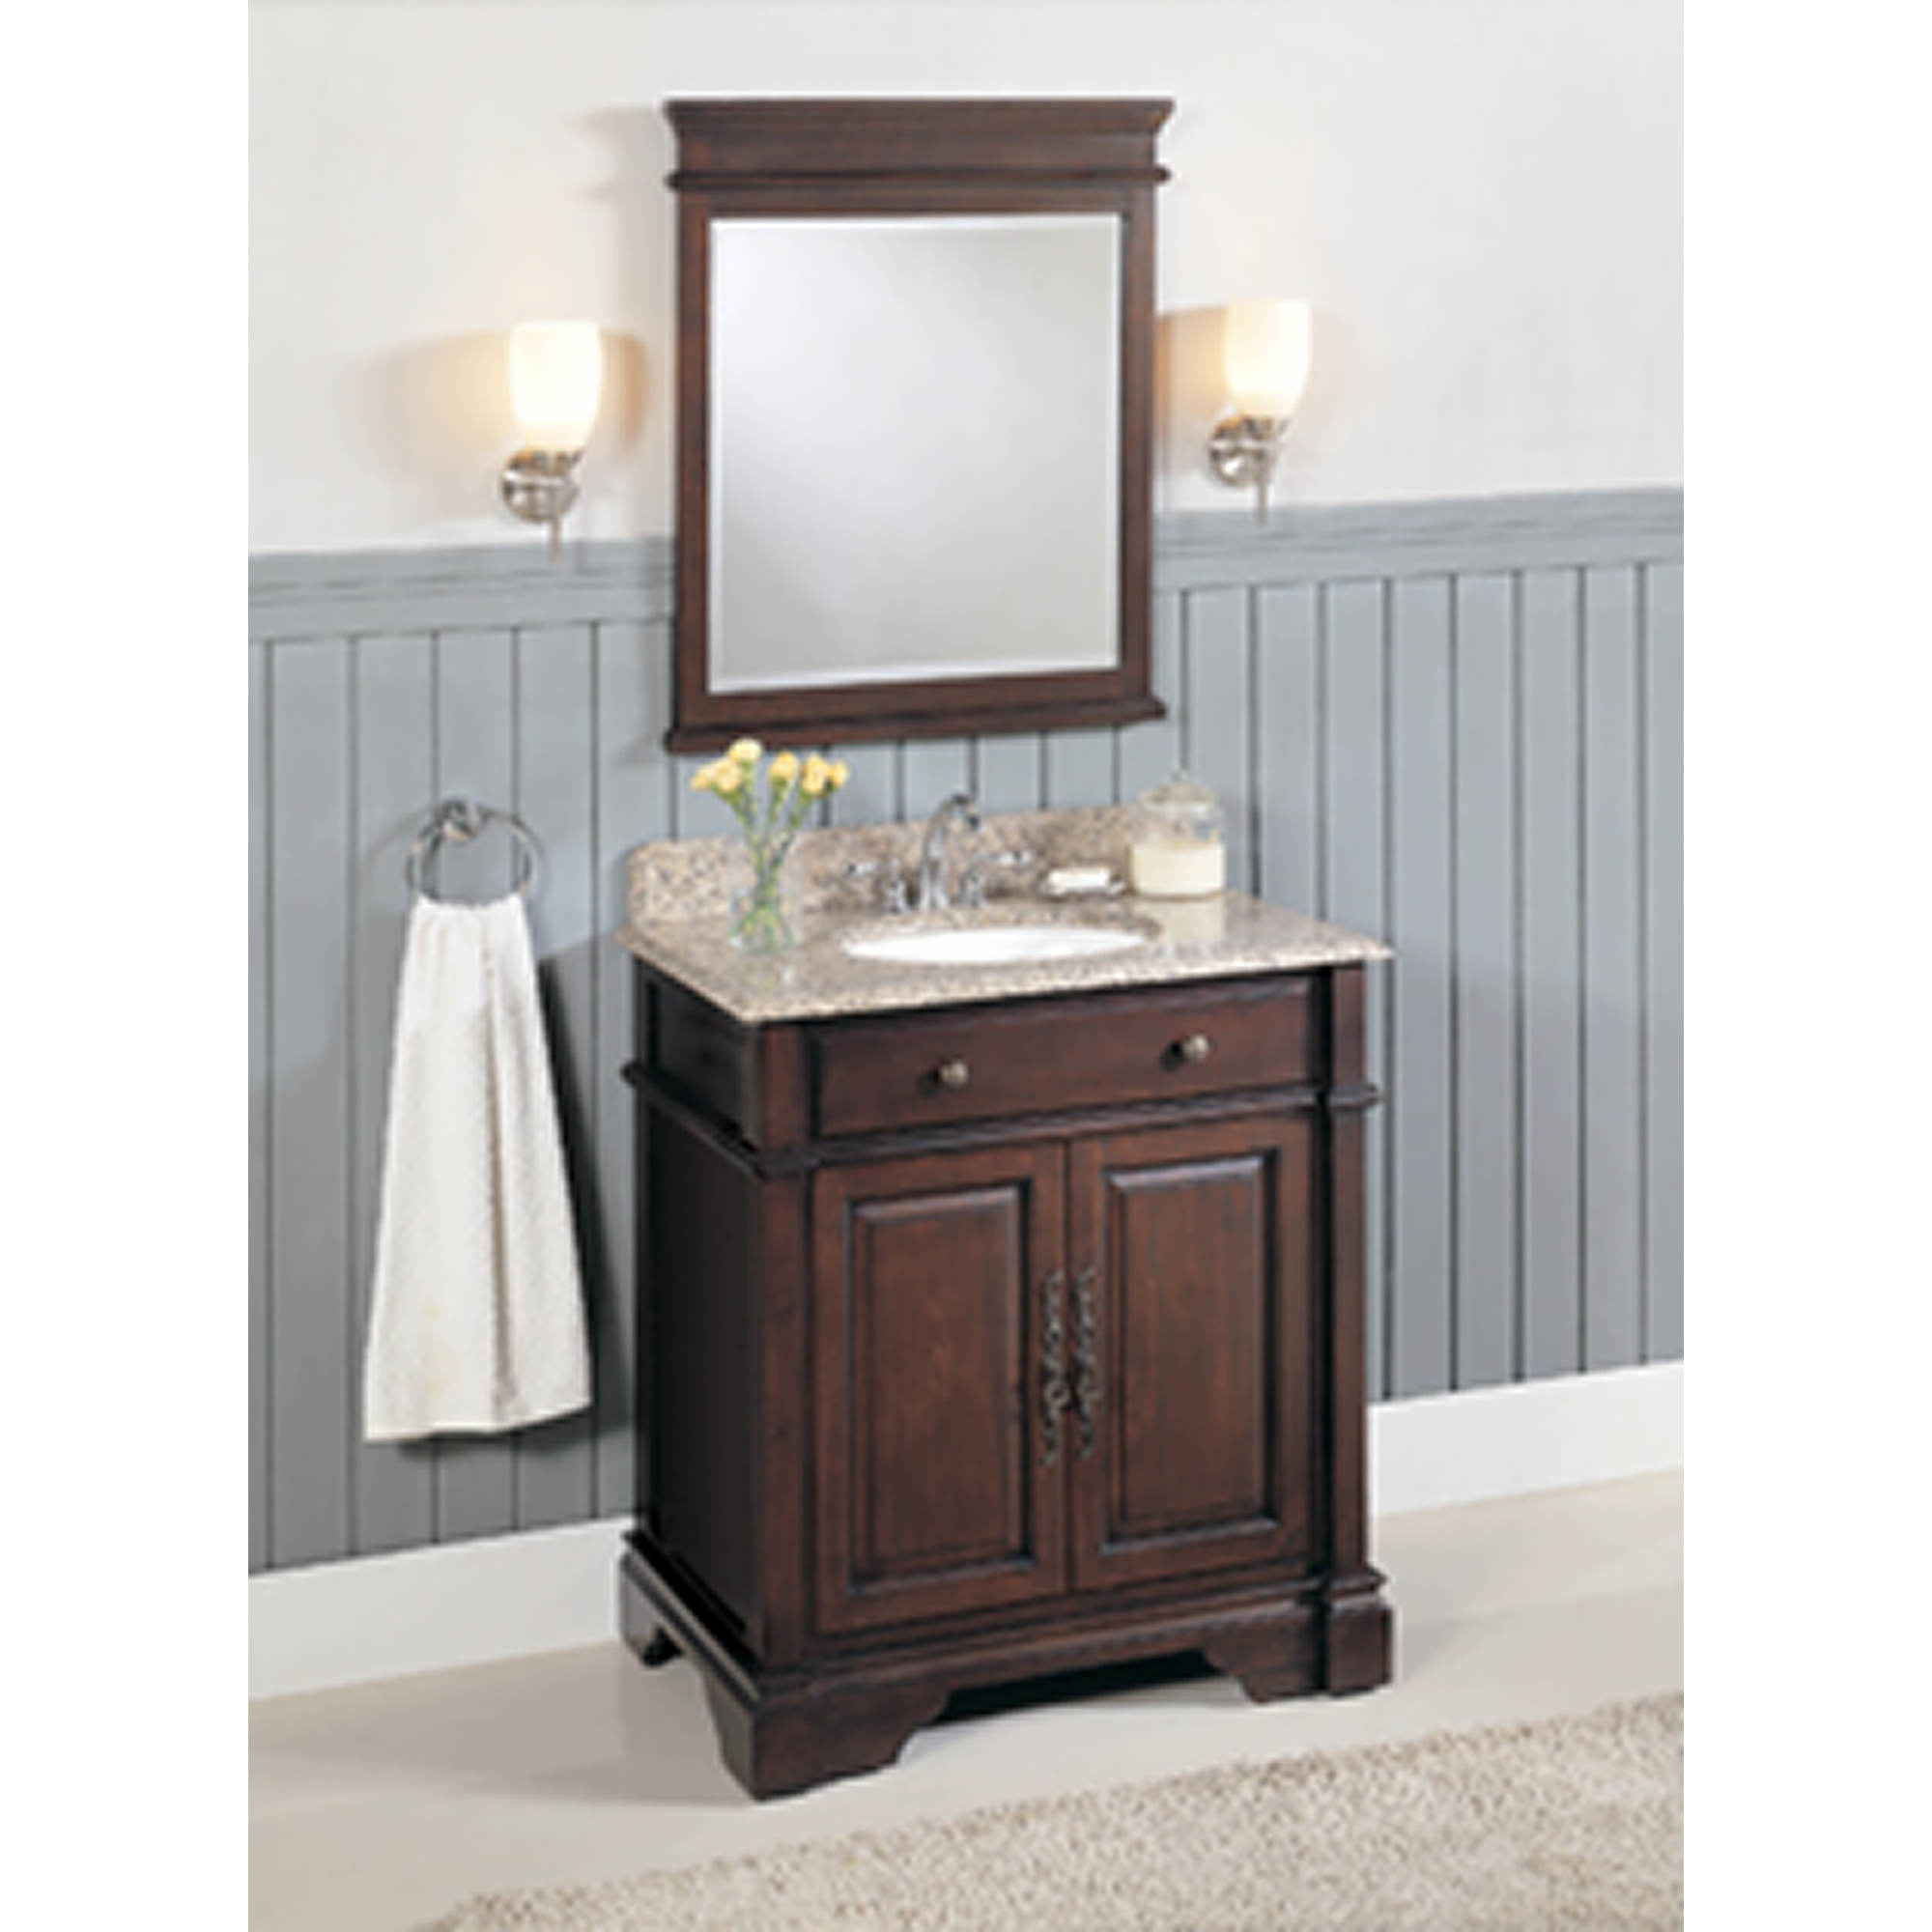 top of bathroom perfect size full with bath sink mission charisma vanity cabinet small white achieve inch grey